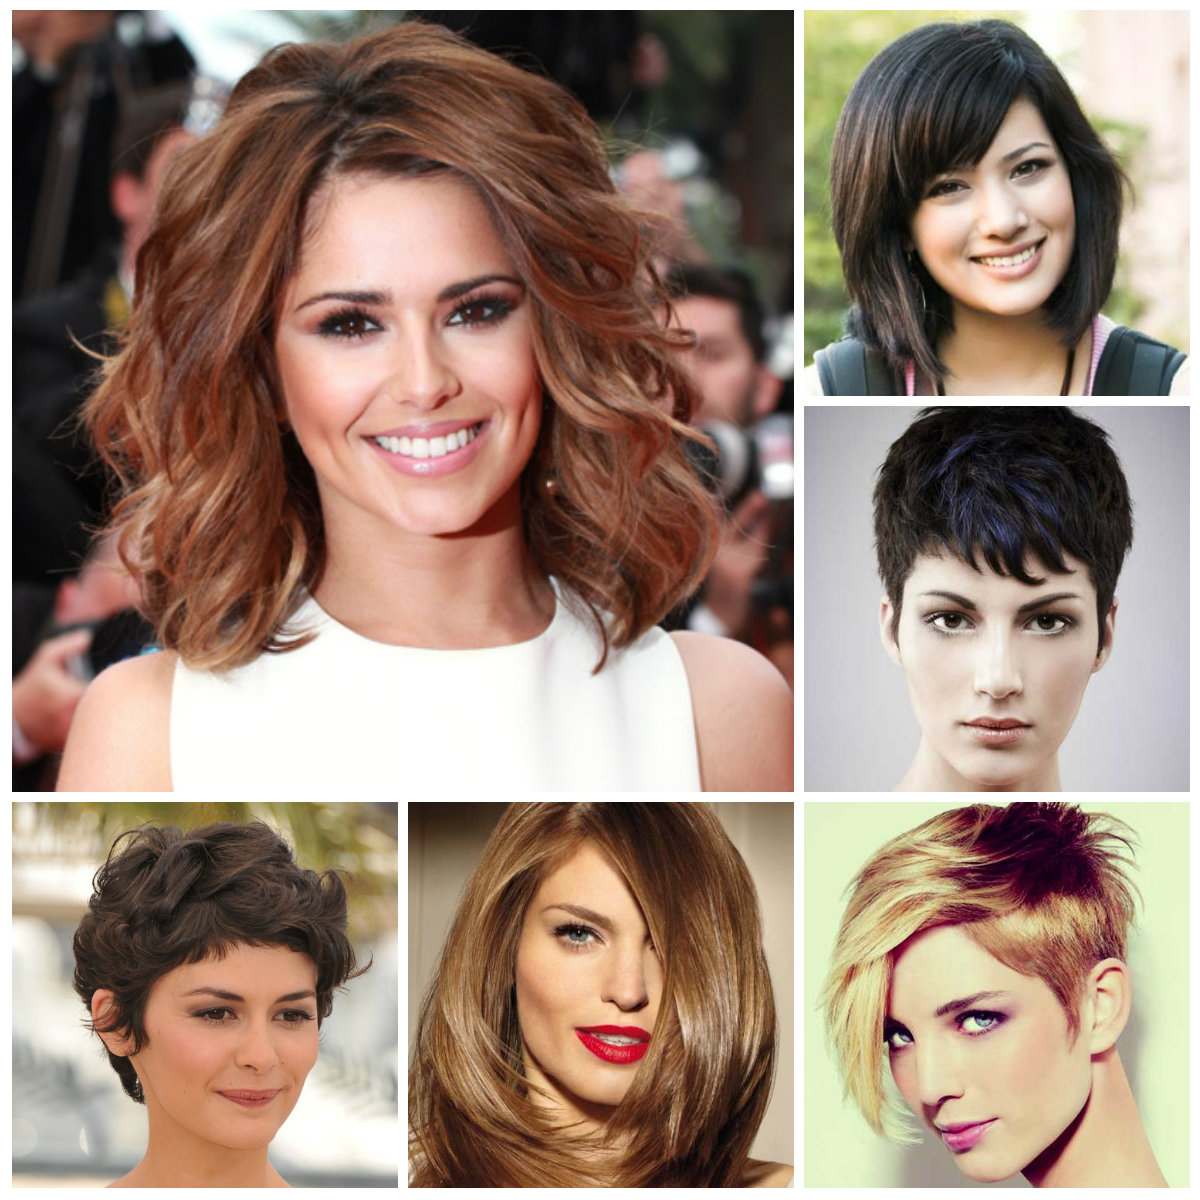 Medium And Short Haircuts For Thick Hair | Hairstyles For Women 2019 Regarding Medium Short Haircuts For Thick Wavy Hair (View 11 of 25)